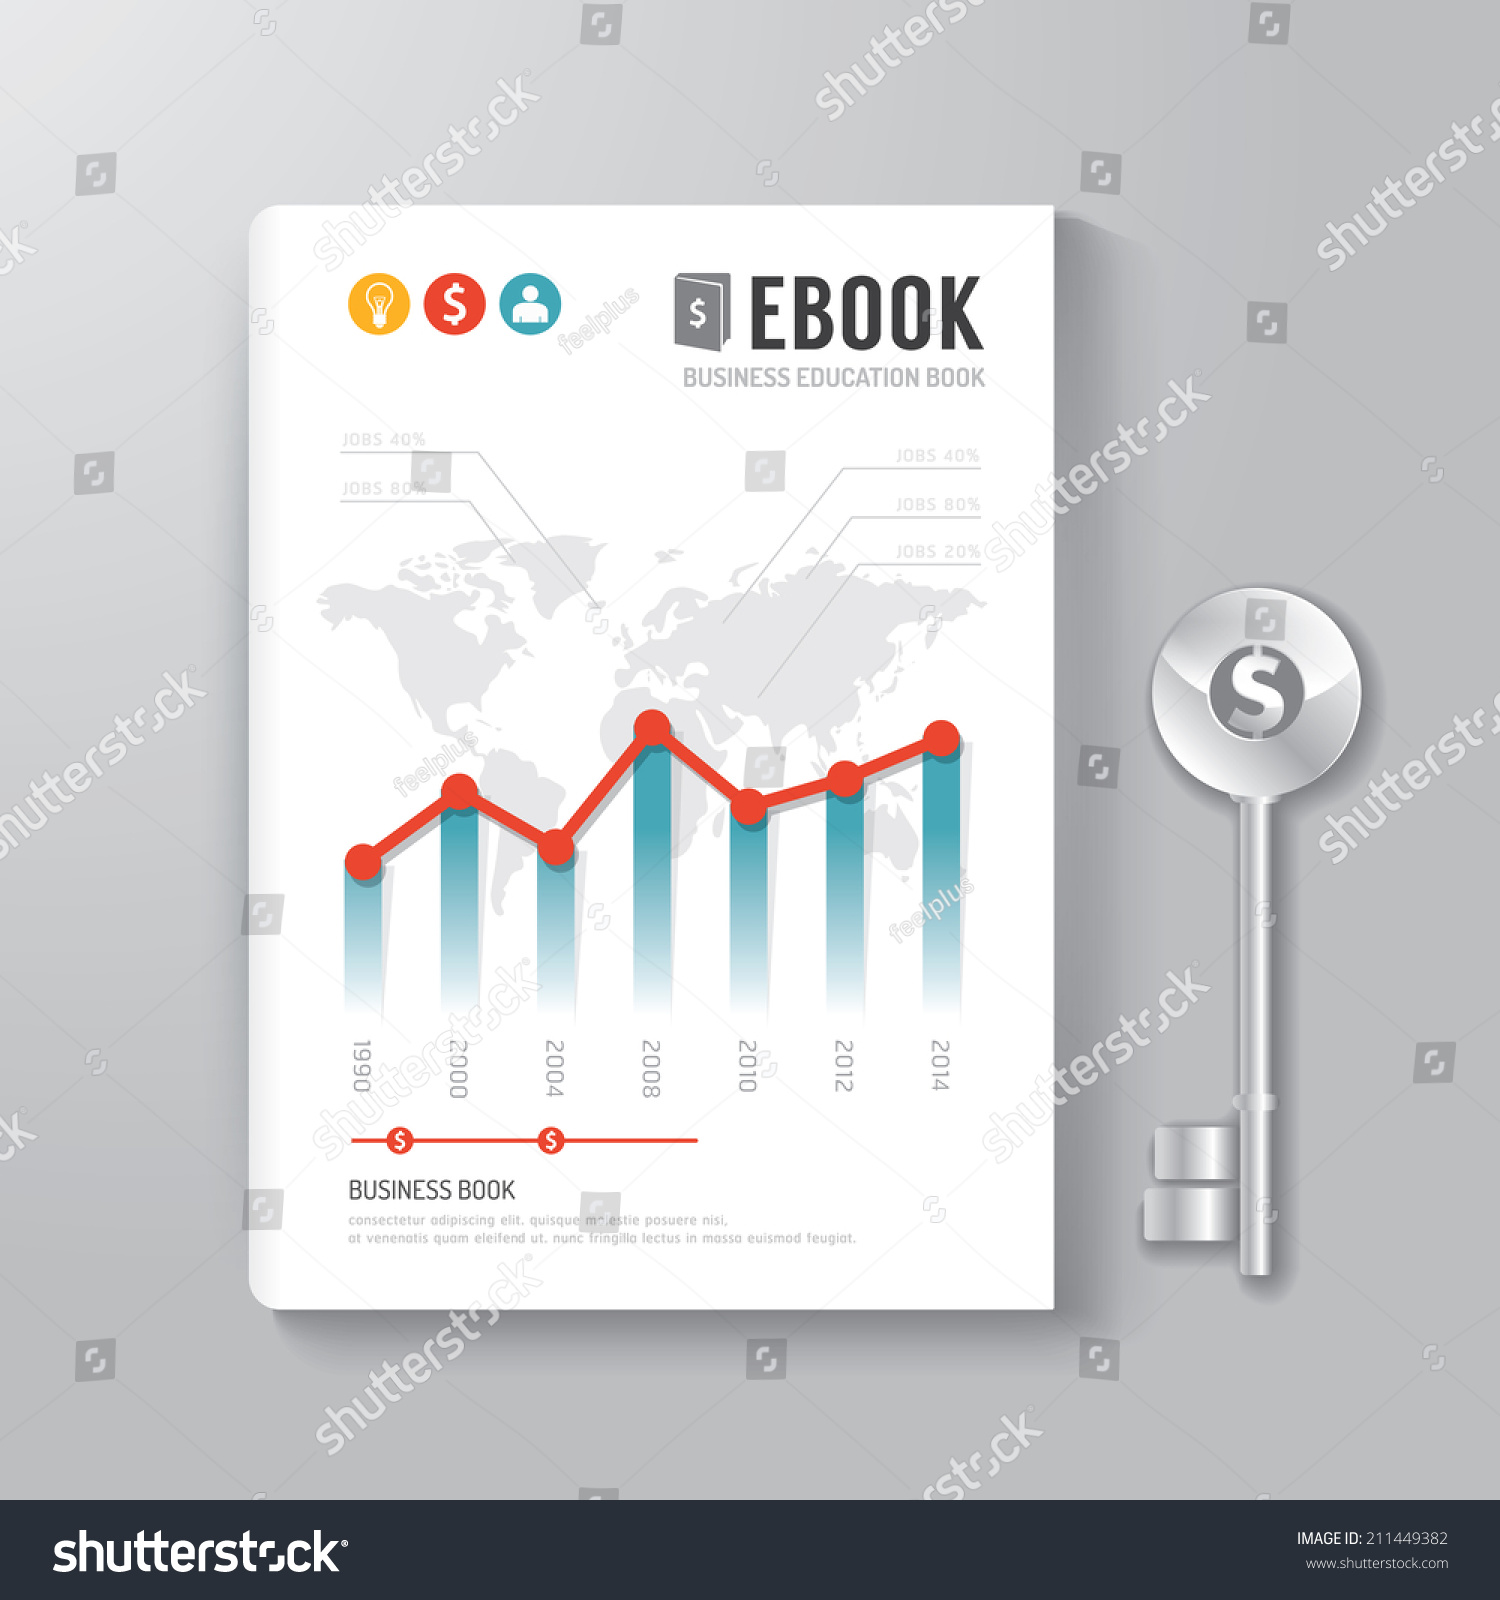 Book Cover Illustration Royalties : Cover book digital design template key of business concept